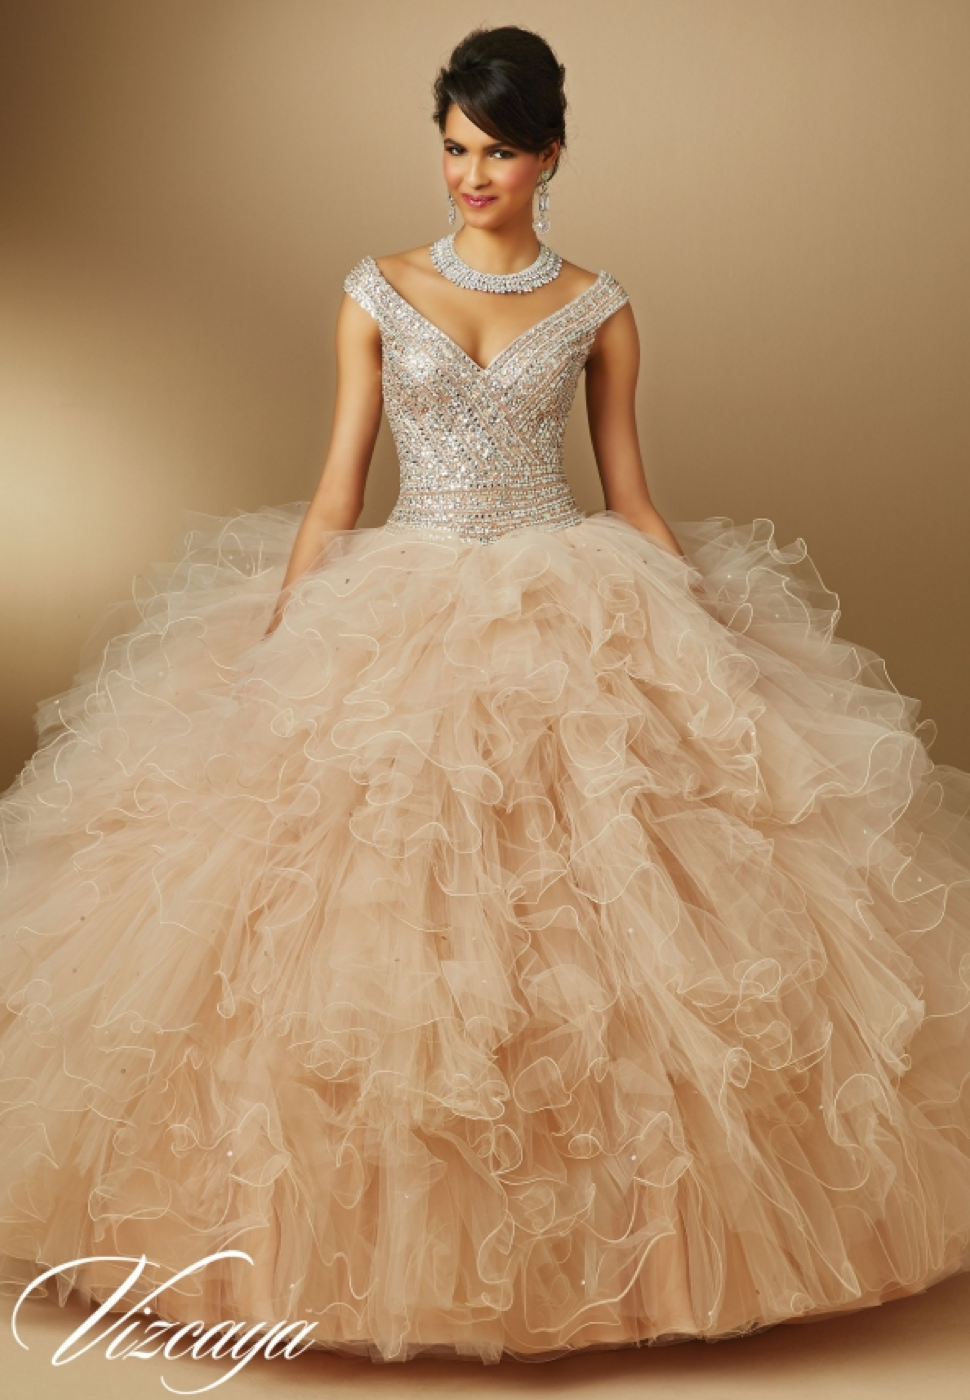 Vintage Wedding Dresses San Antonio Tx - Free Wedding Dresses